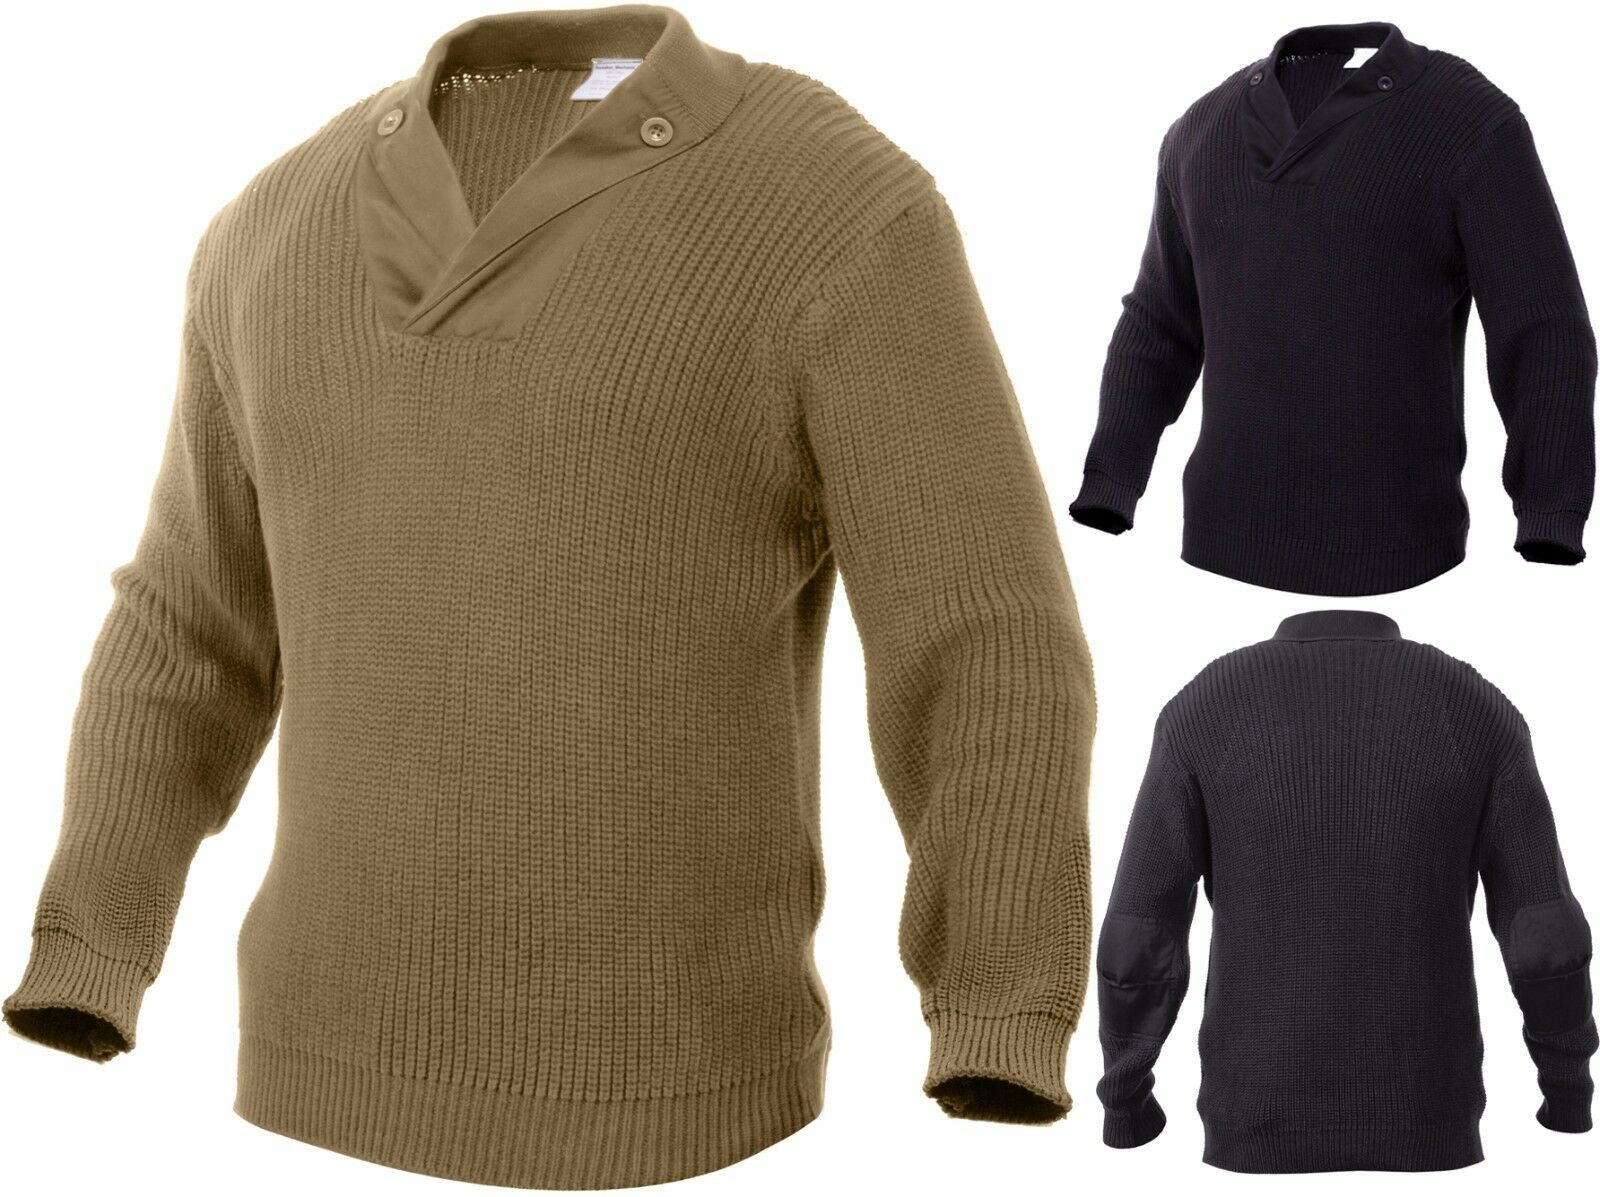 Primary image for Thick Knit Ribbed Military WWII Style Mechanics Sweater with Elbow Patches